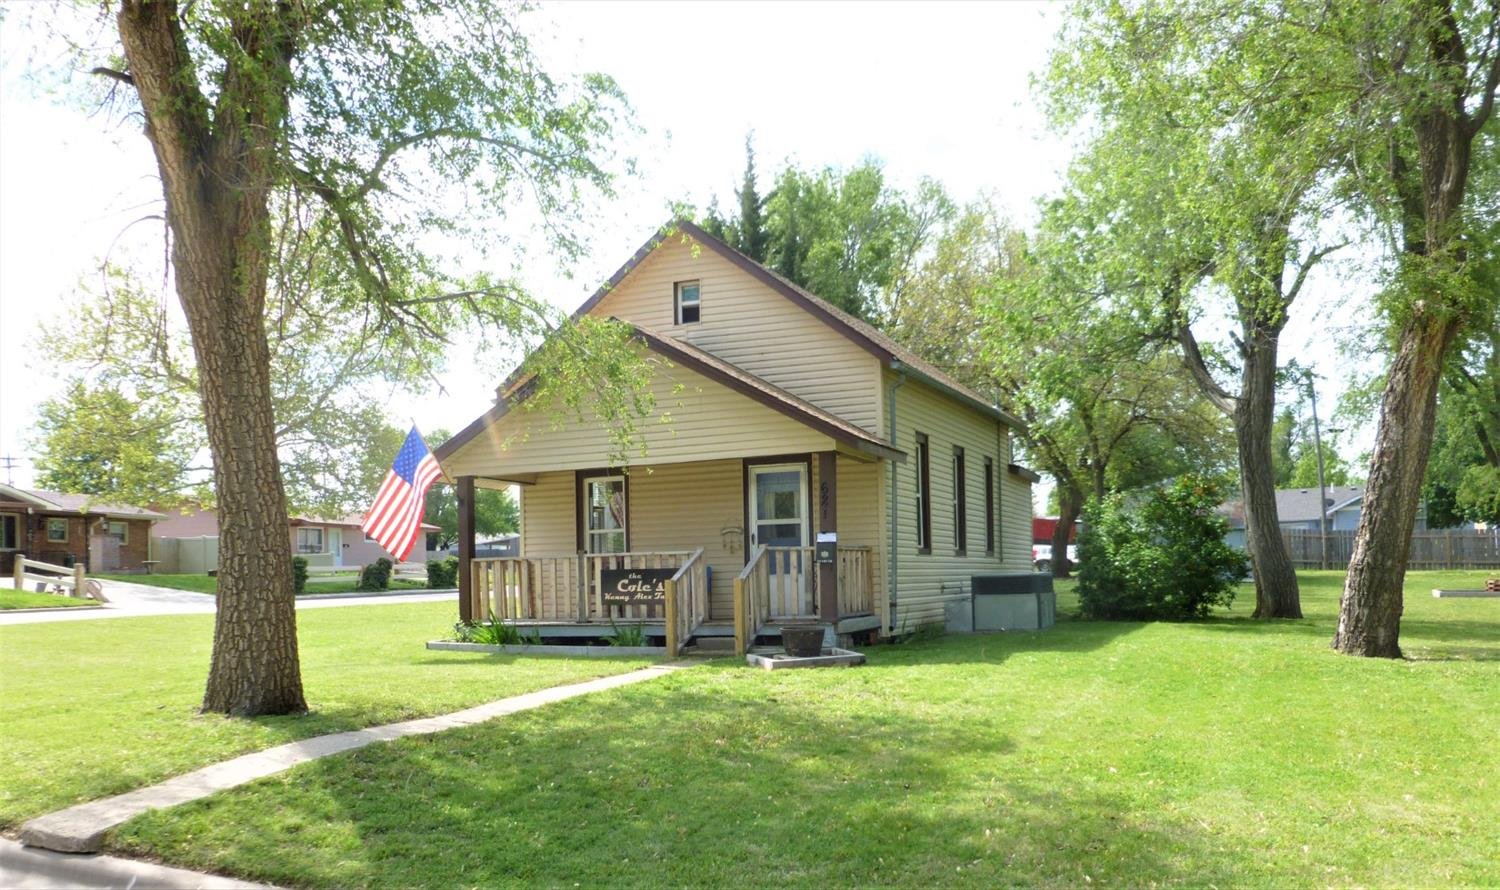 Beautiful little bungalow on a big corner lot with trees. Charming smaller home ready for new owners! Lots to like about this property! Call now to set up your showing.